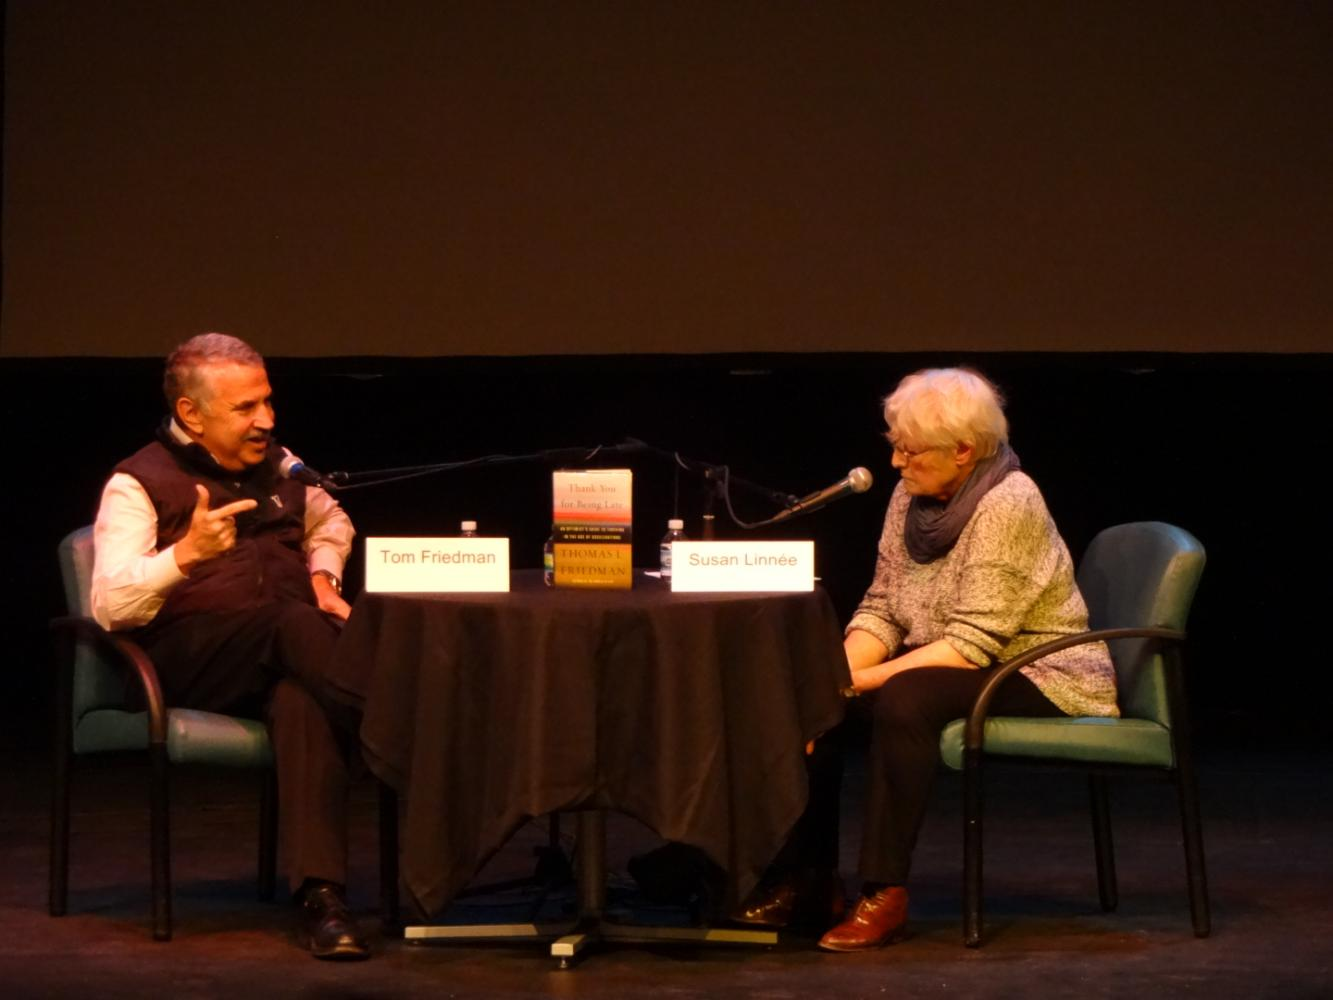 Distinguished journalist Susan Linnee interviews Park alumnus and bestselling author Thomas Friedman at the JCC April 30. Proceeds from the event go to support the St. Louis Park Historical Society's capital fund for a history center.